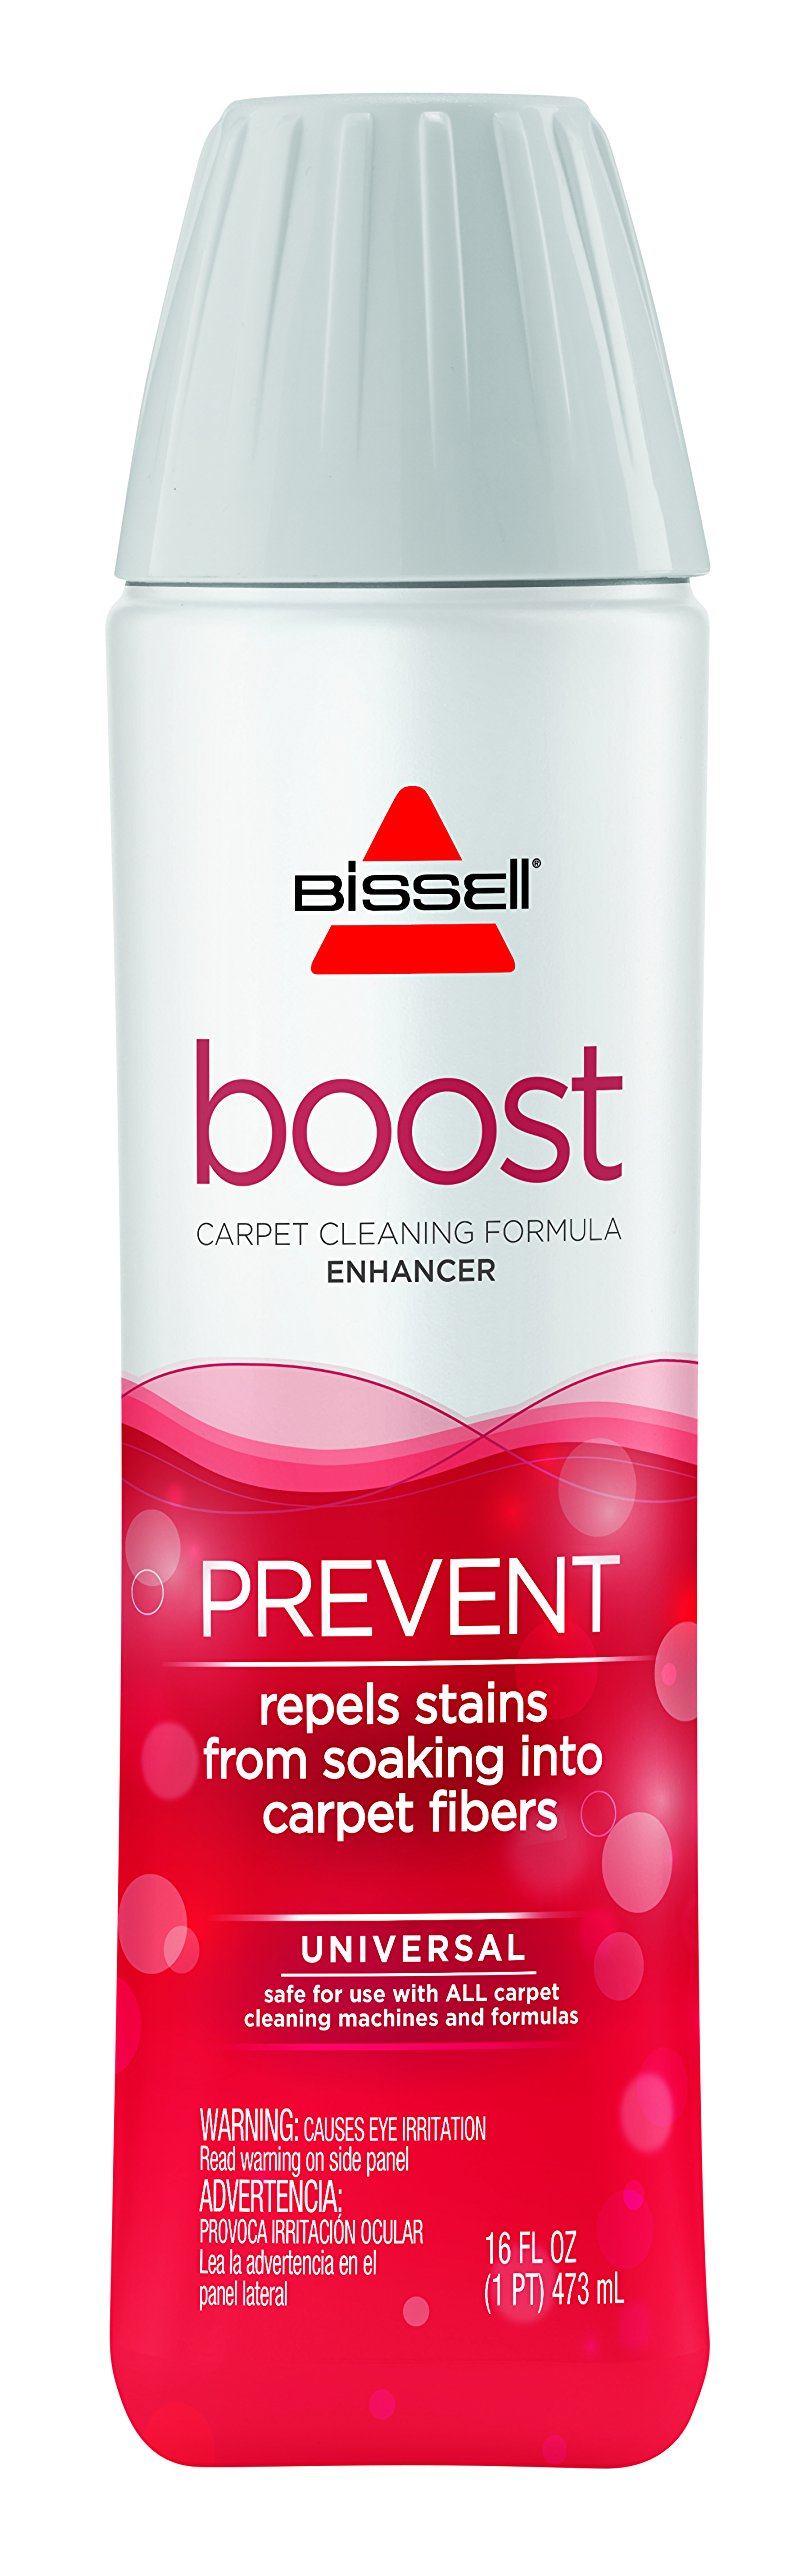 BISSELL Prevent Boost Carpet Cleaning Formula Enhancer by Bissell (Image #1)